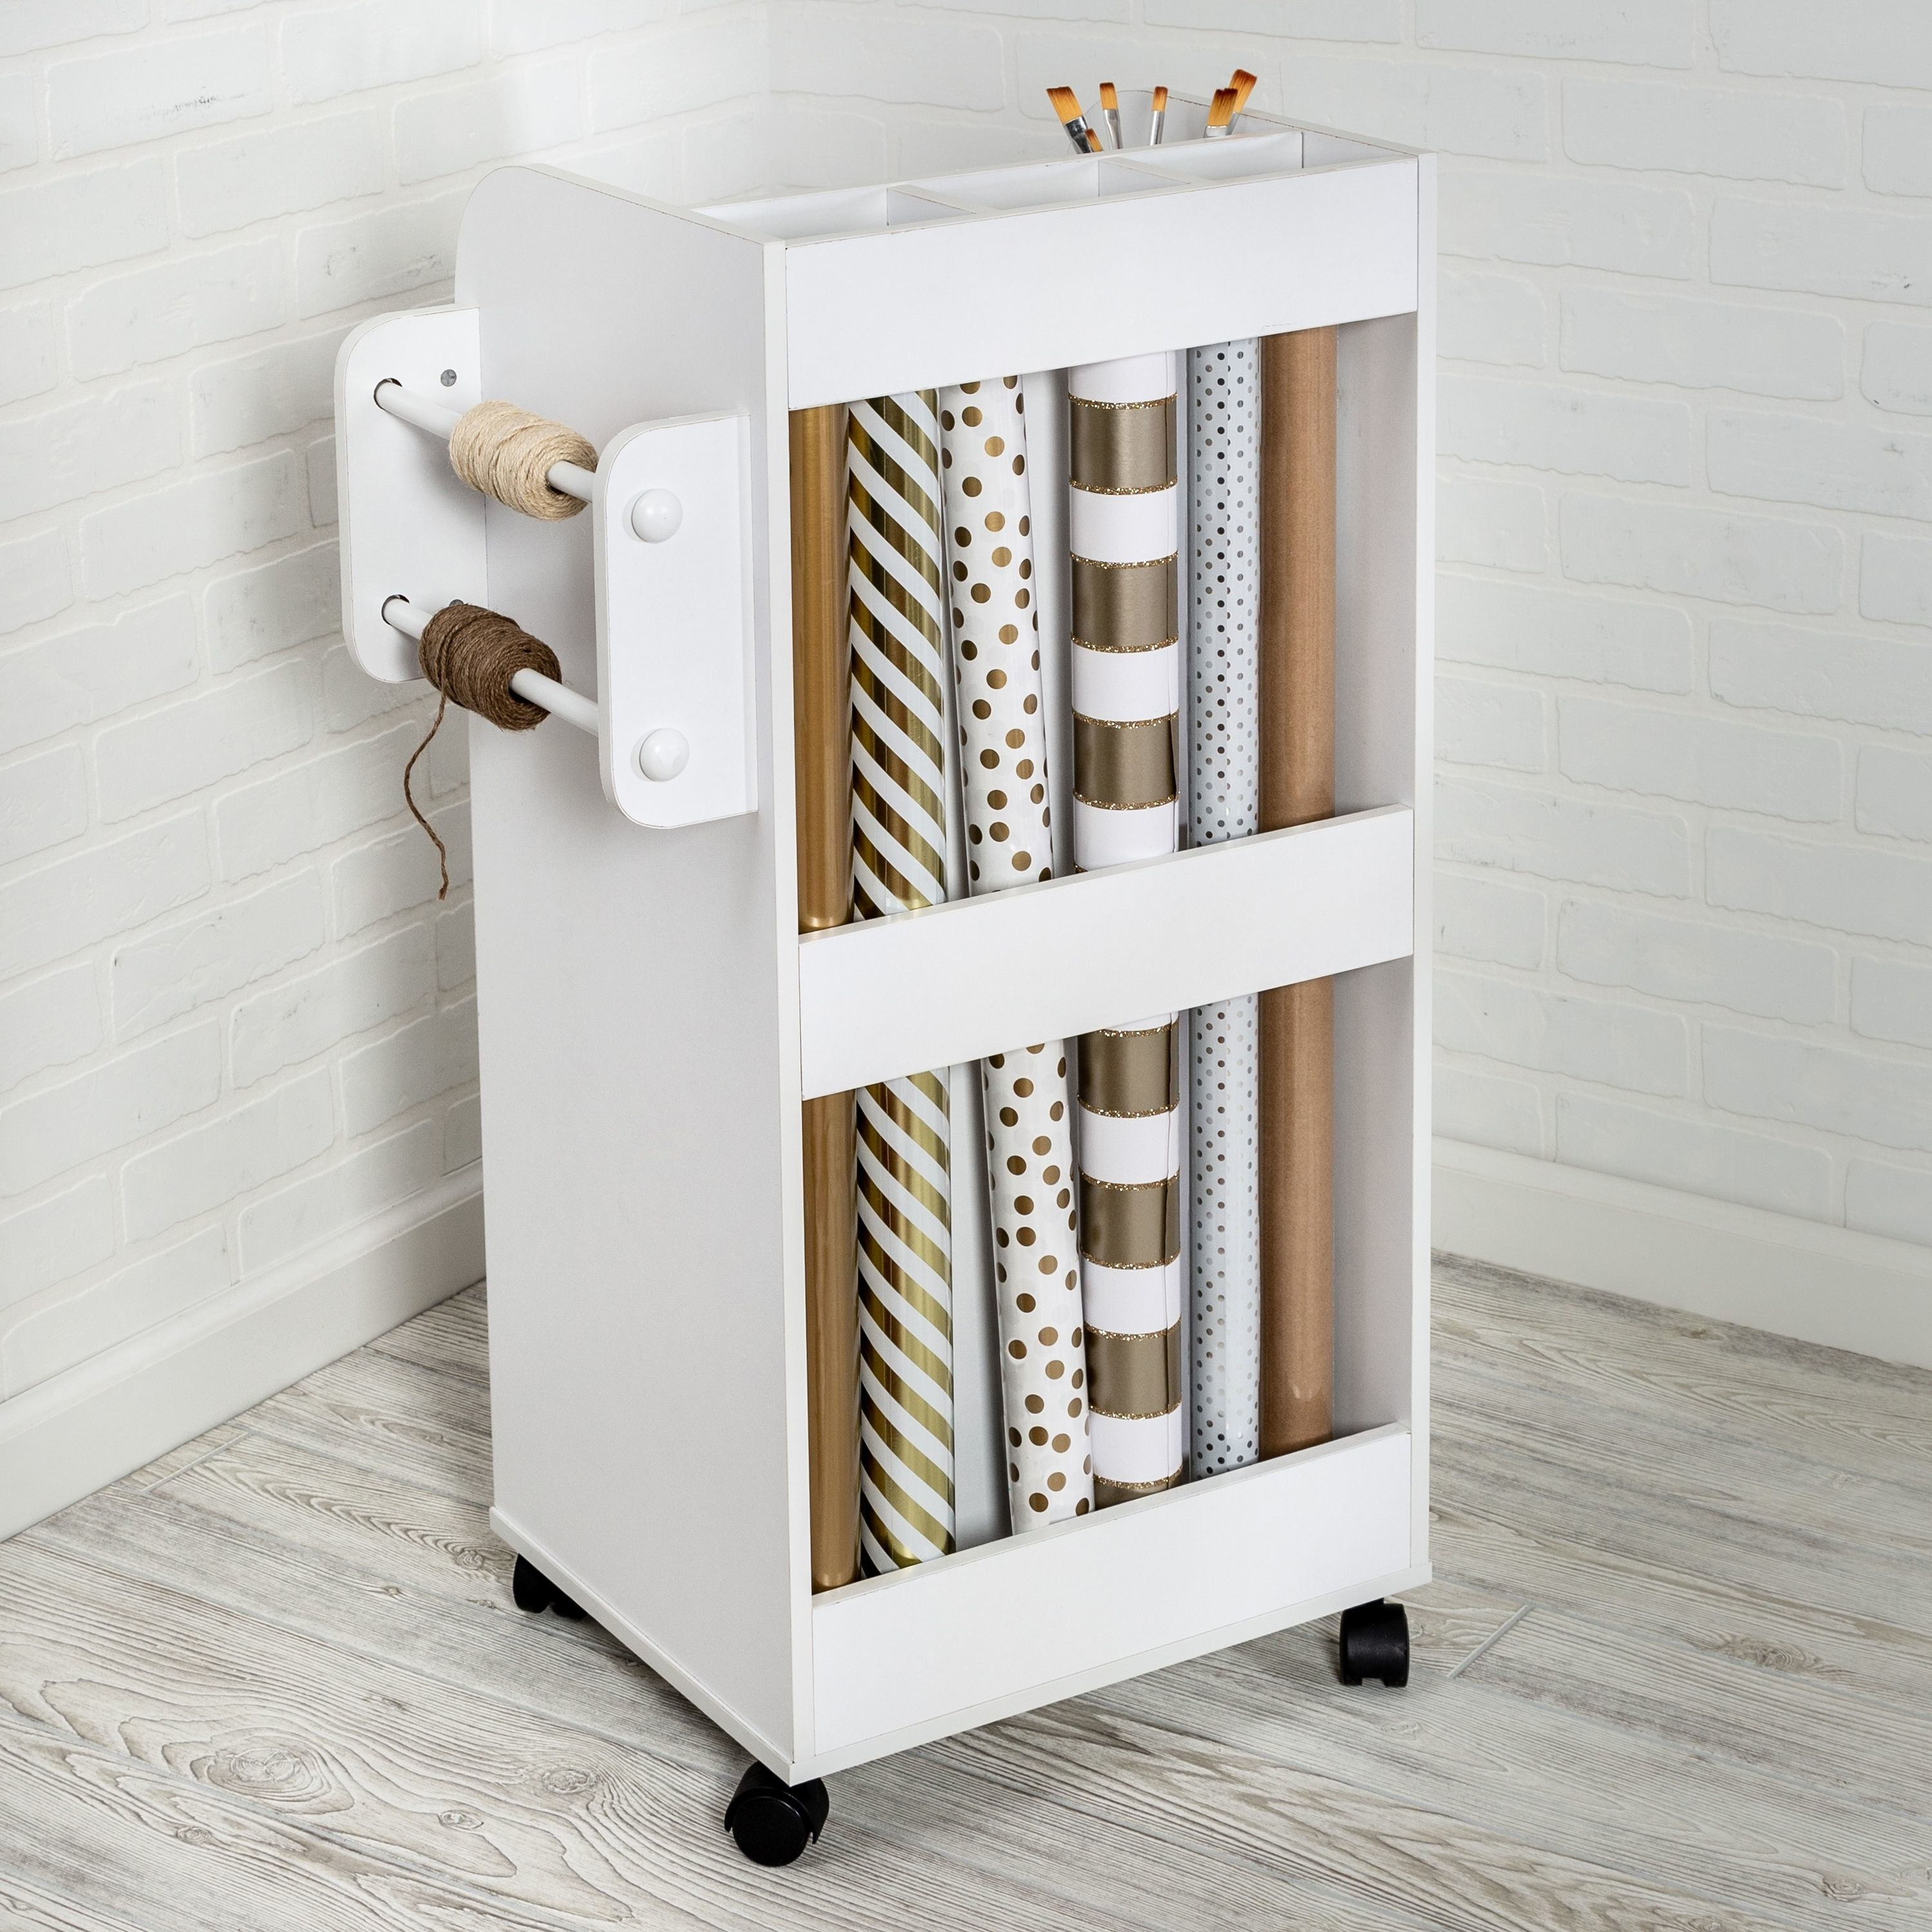 A crafting cart in a home